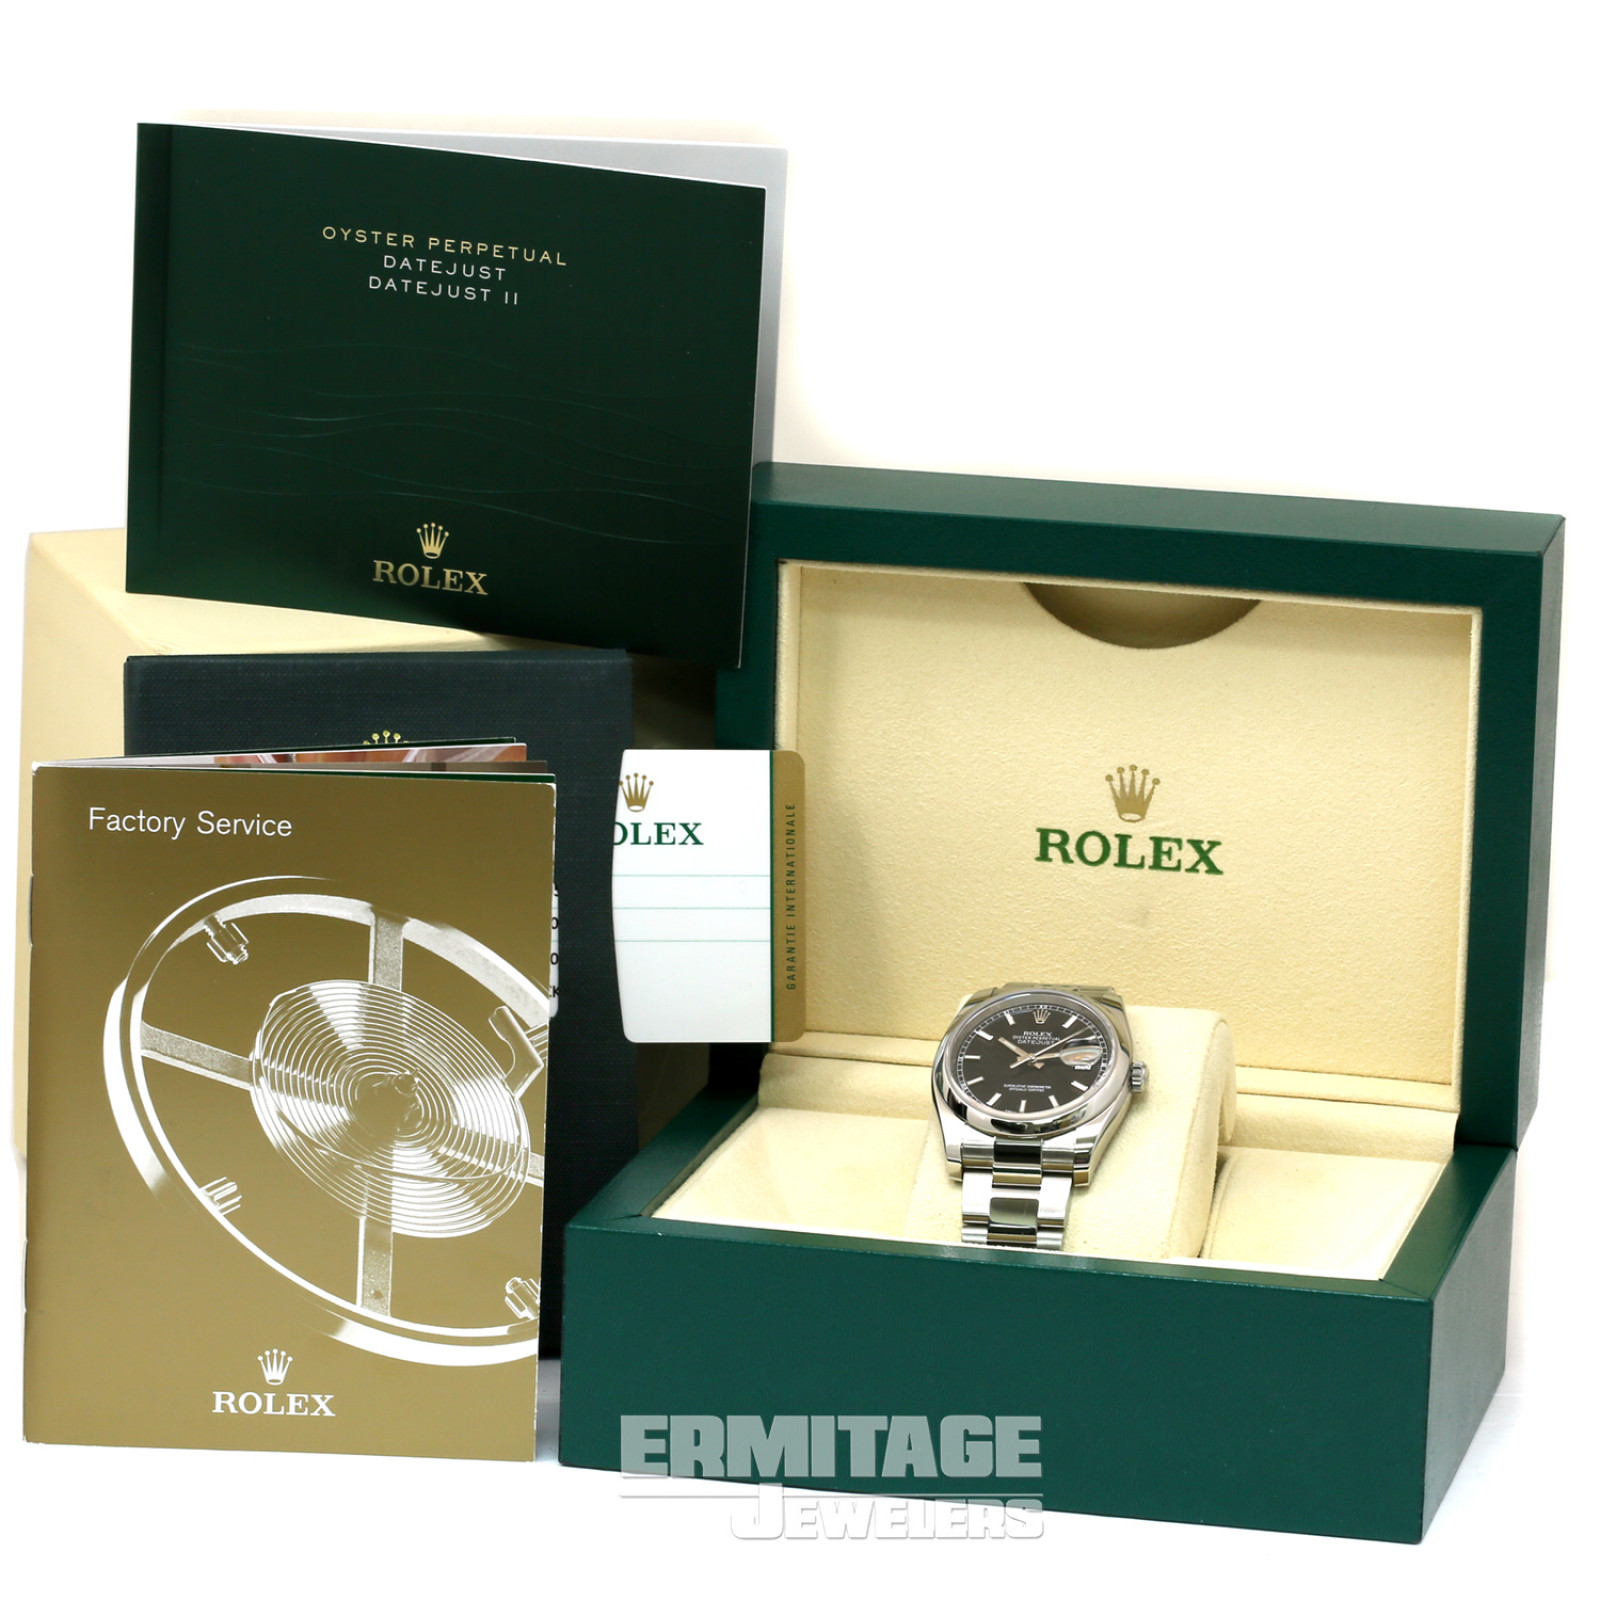 36 mm Rolex Datejust 116200 Steel on Oyster with Black Dial